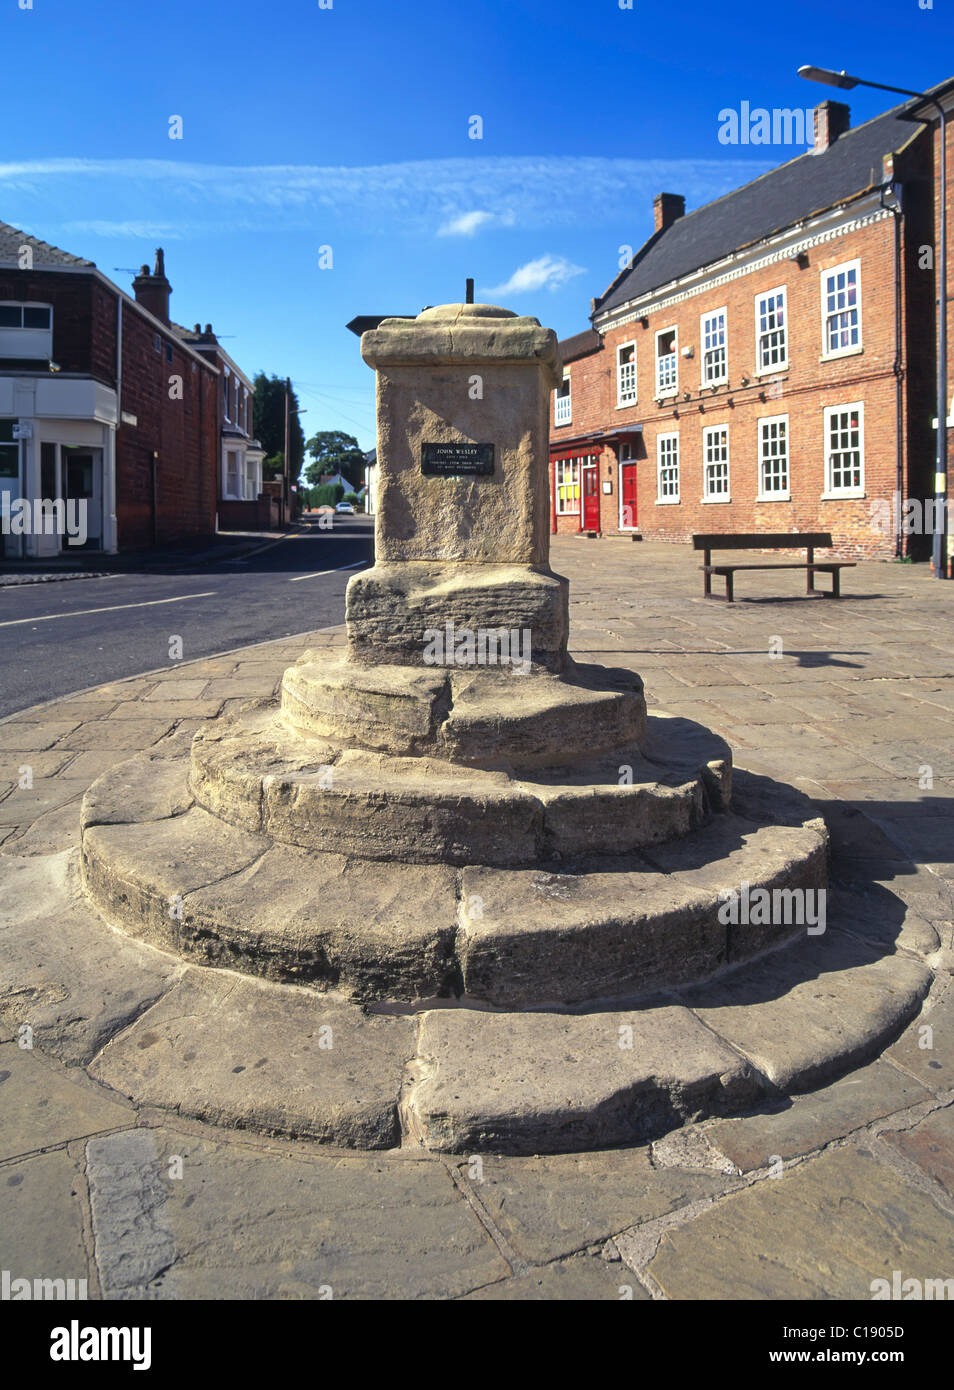 Market Cross where methodist preacher John Wesley preached and was born in Epworth Isle of Axholme North Lincolnshire - Stock Image